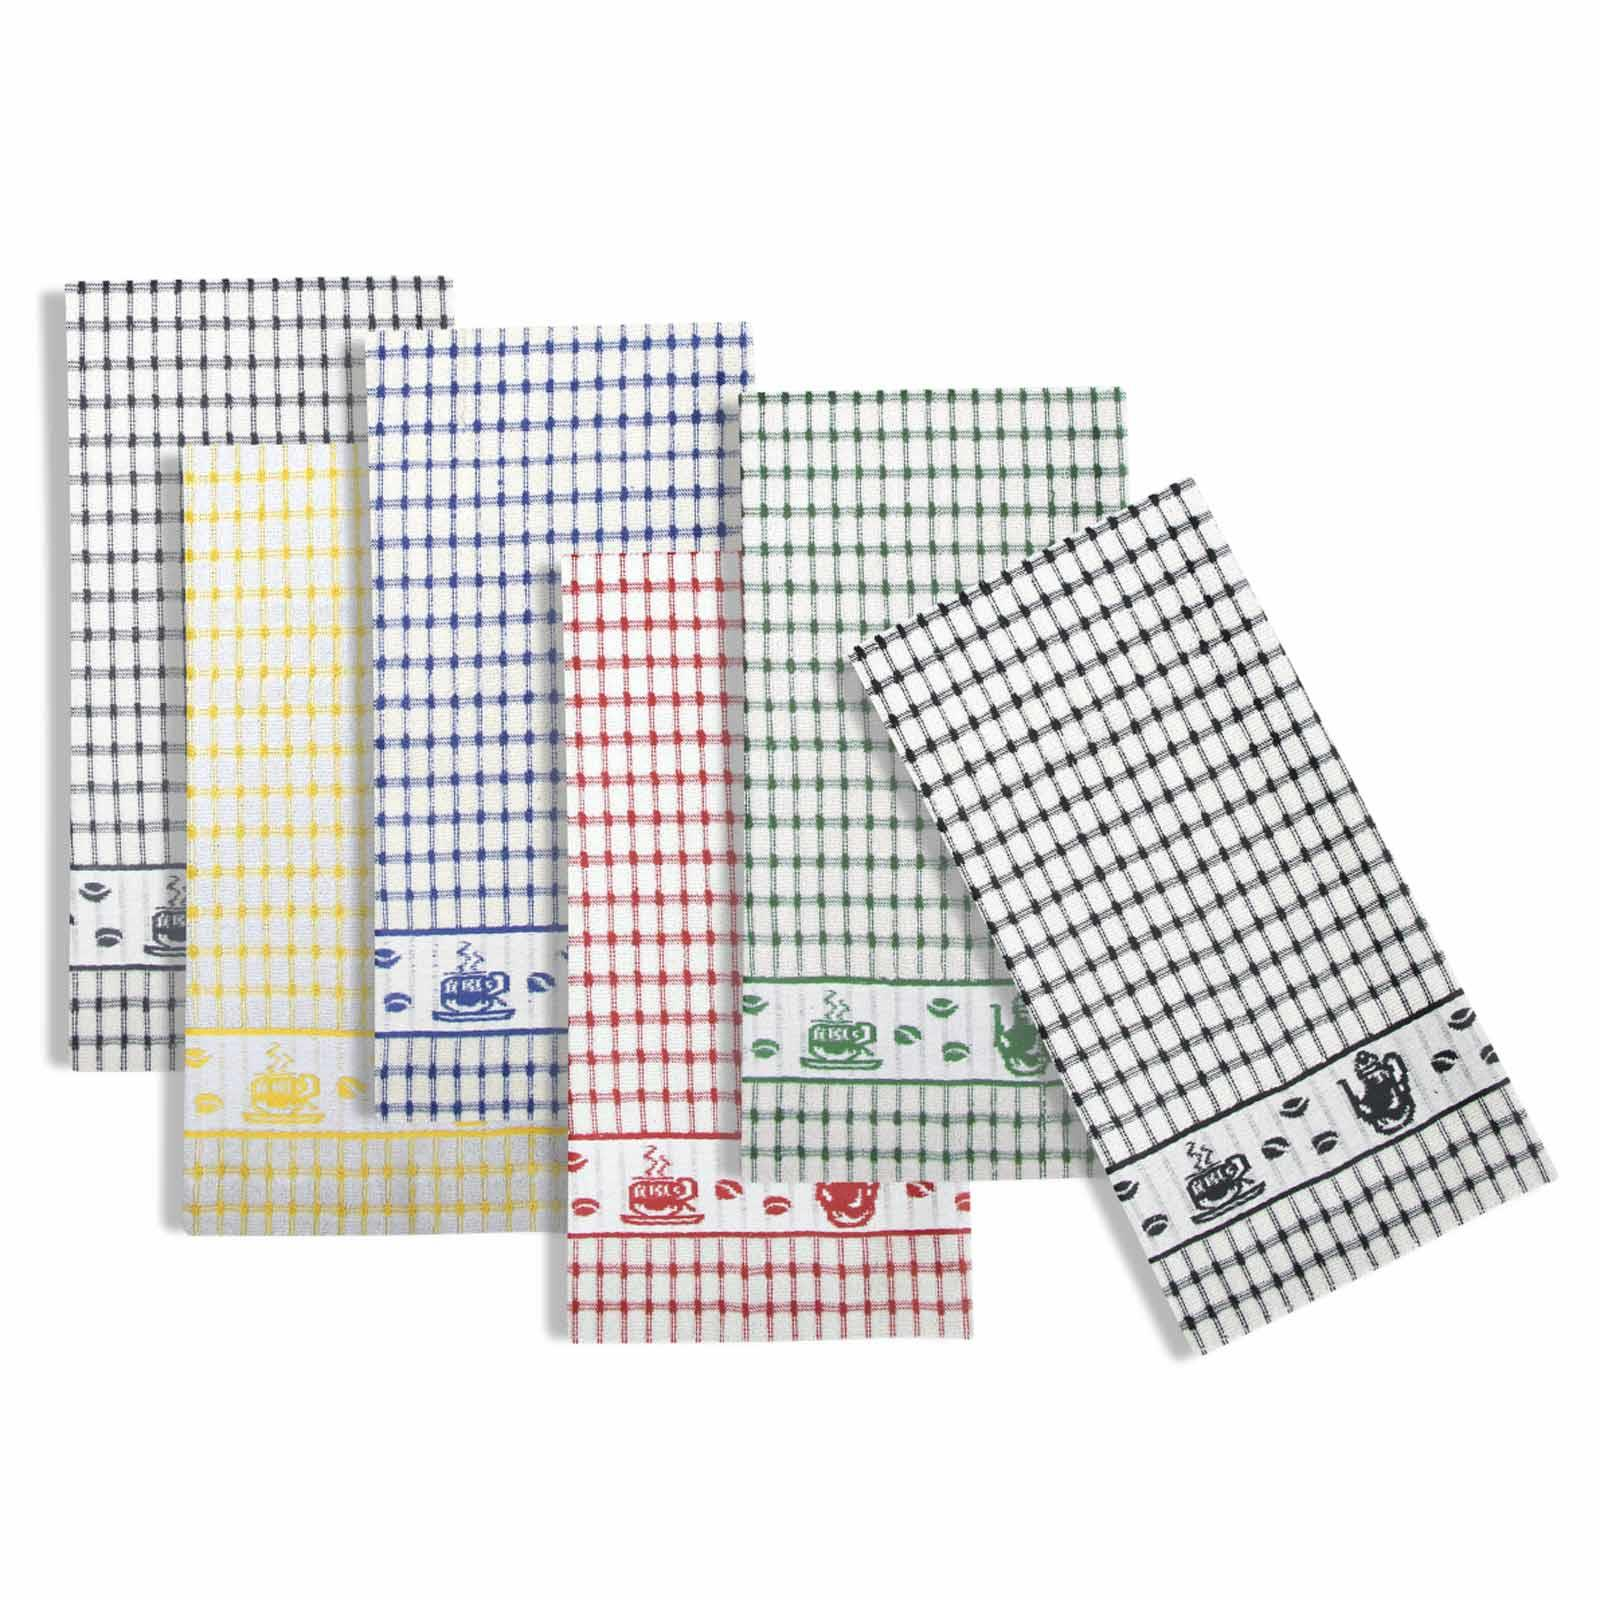 Packs-of-2-4-6-12-Tea-Towels-100-Cotton-Terry-Kitchen-Dish-Drying-Towel-Sets thumbnail 86